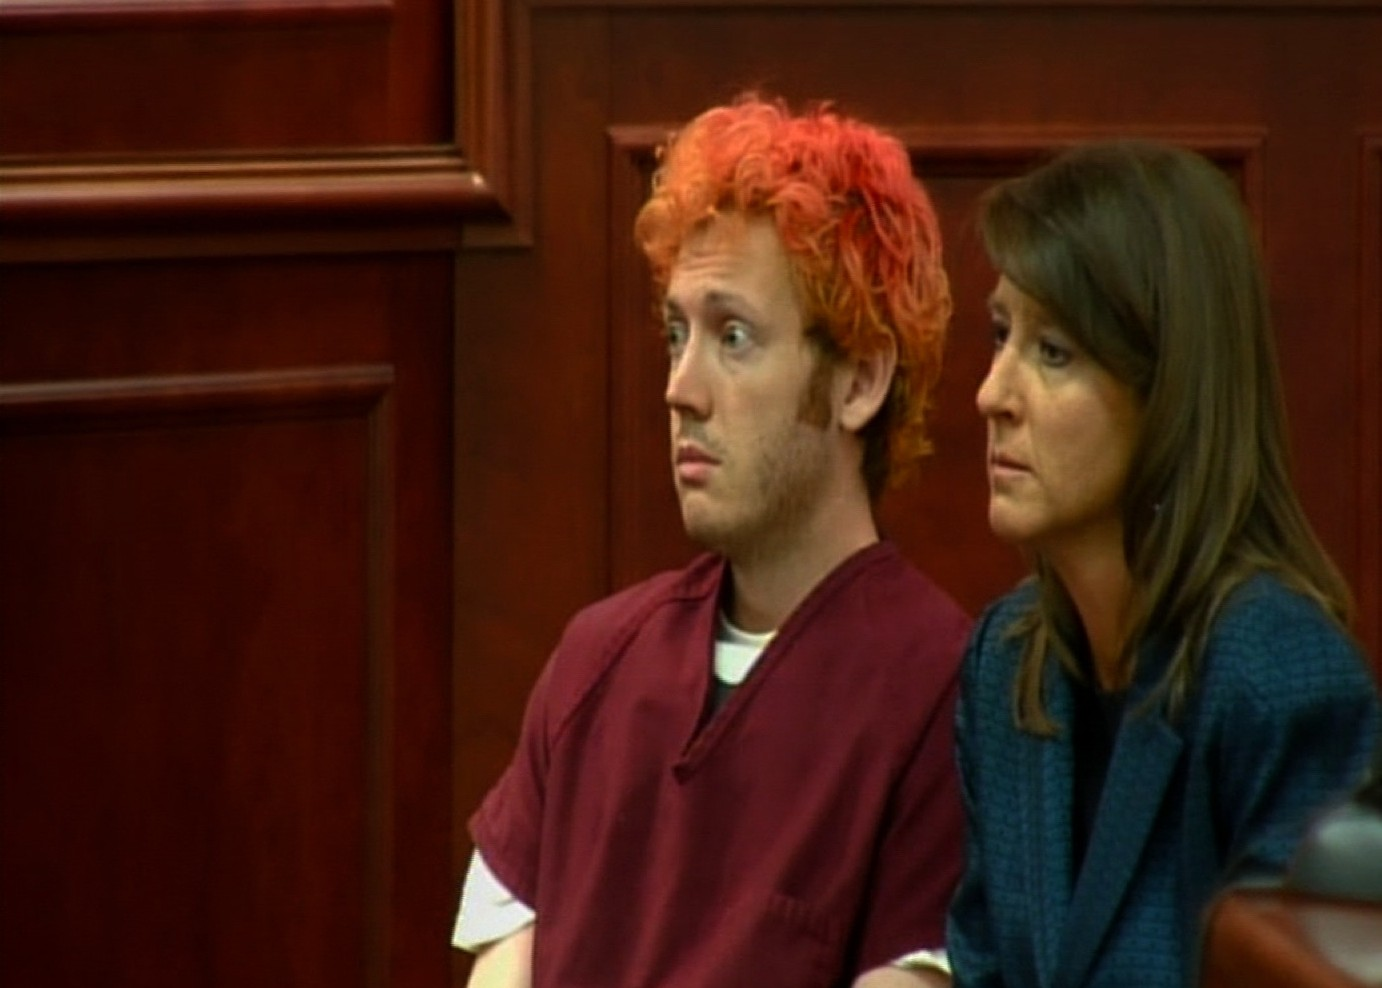 James Holmes appears in court